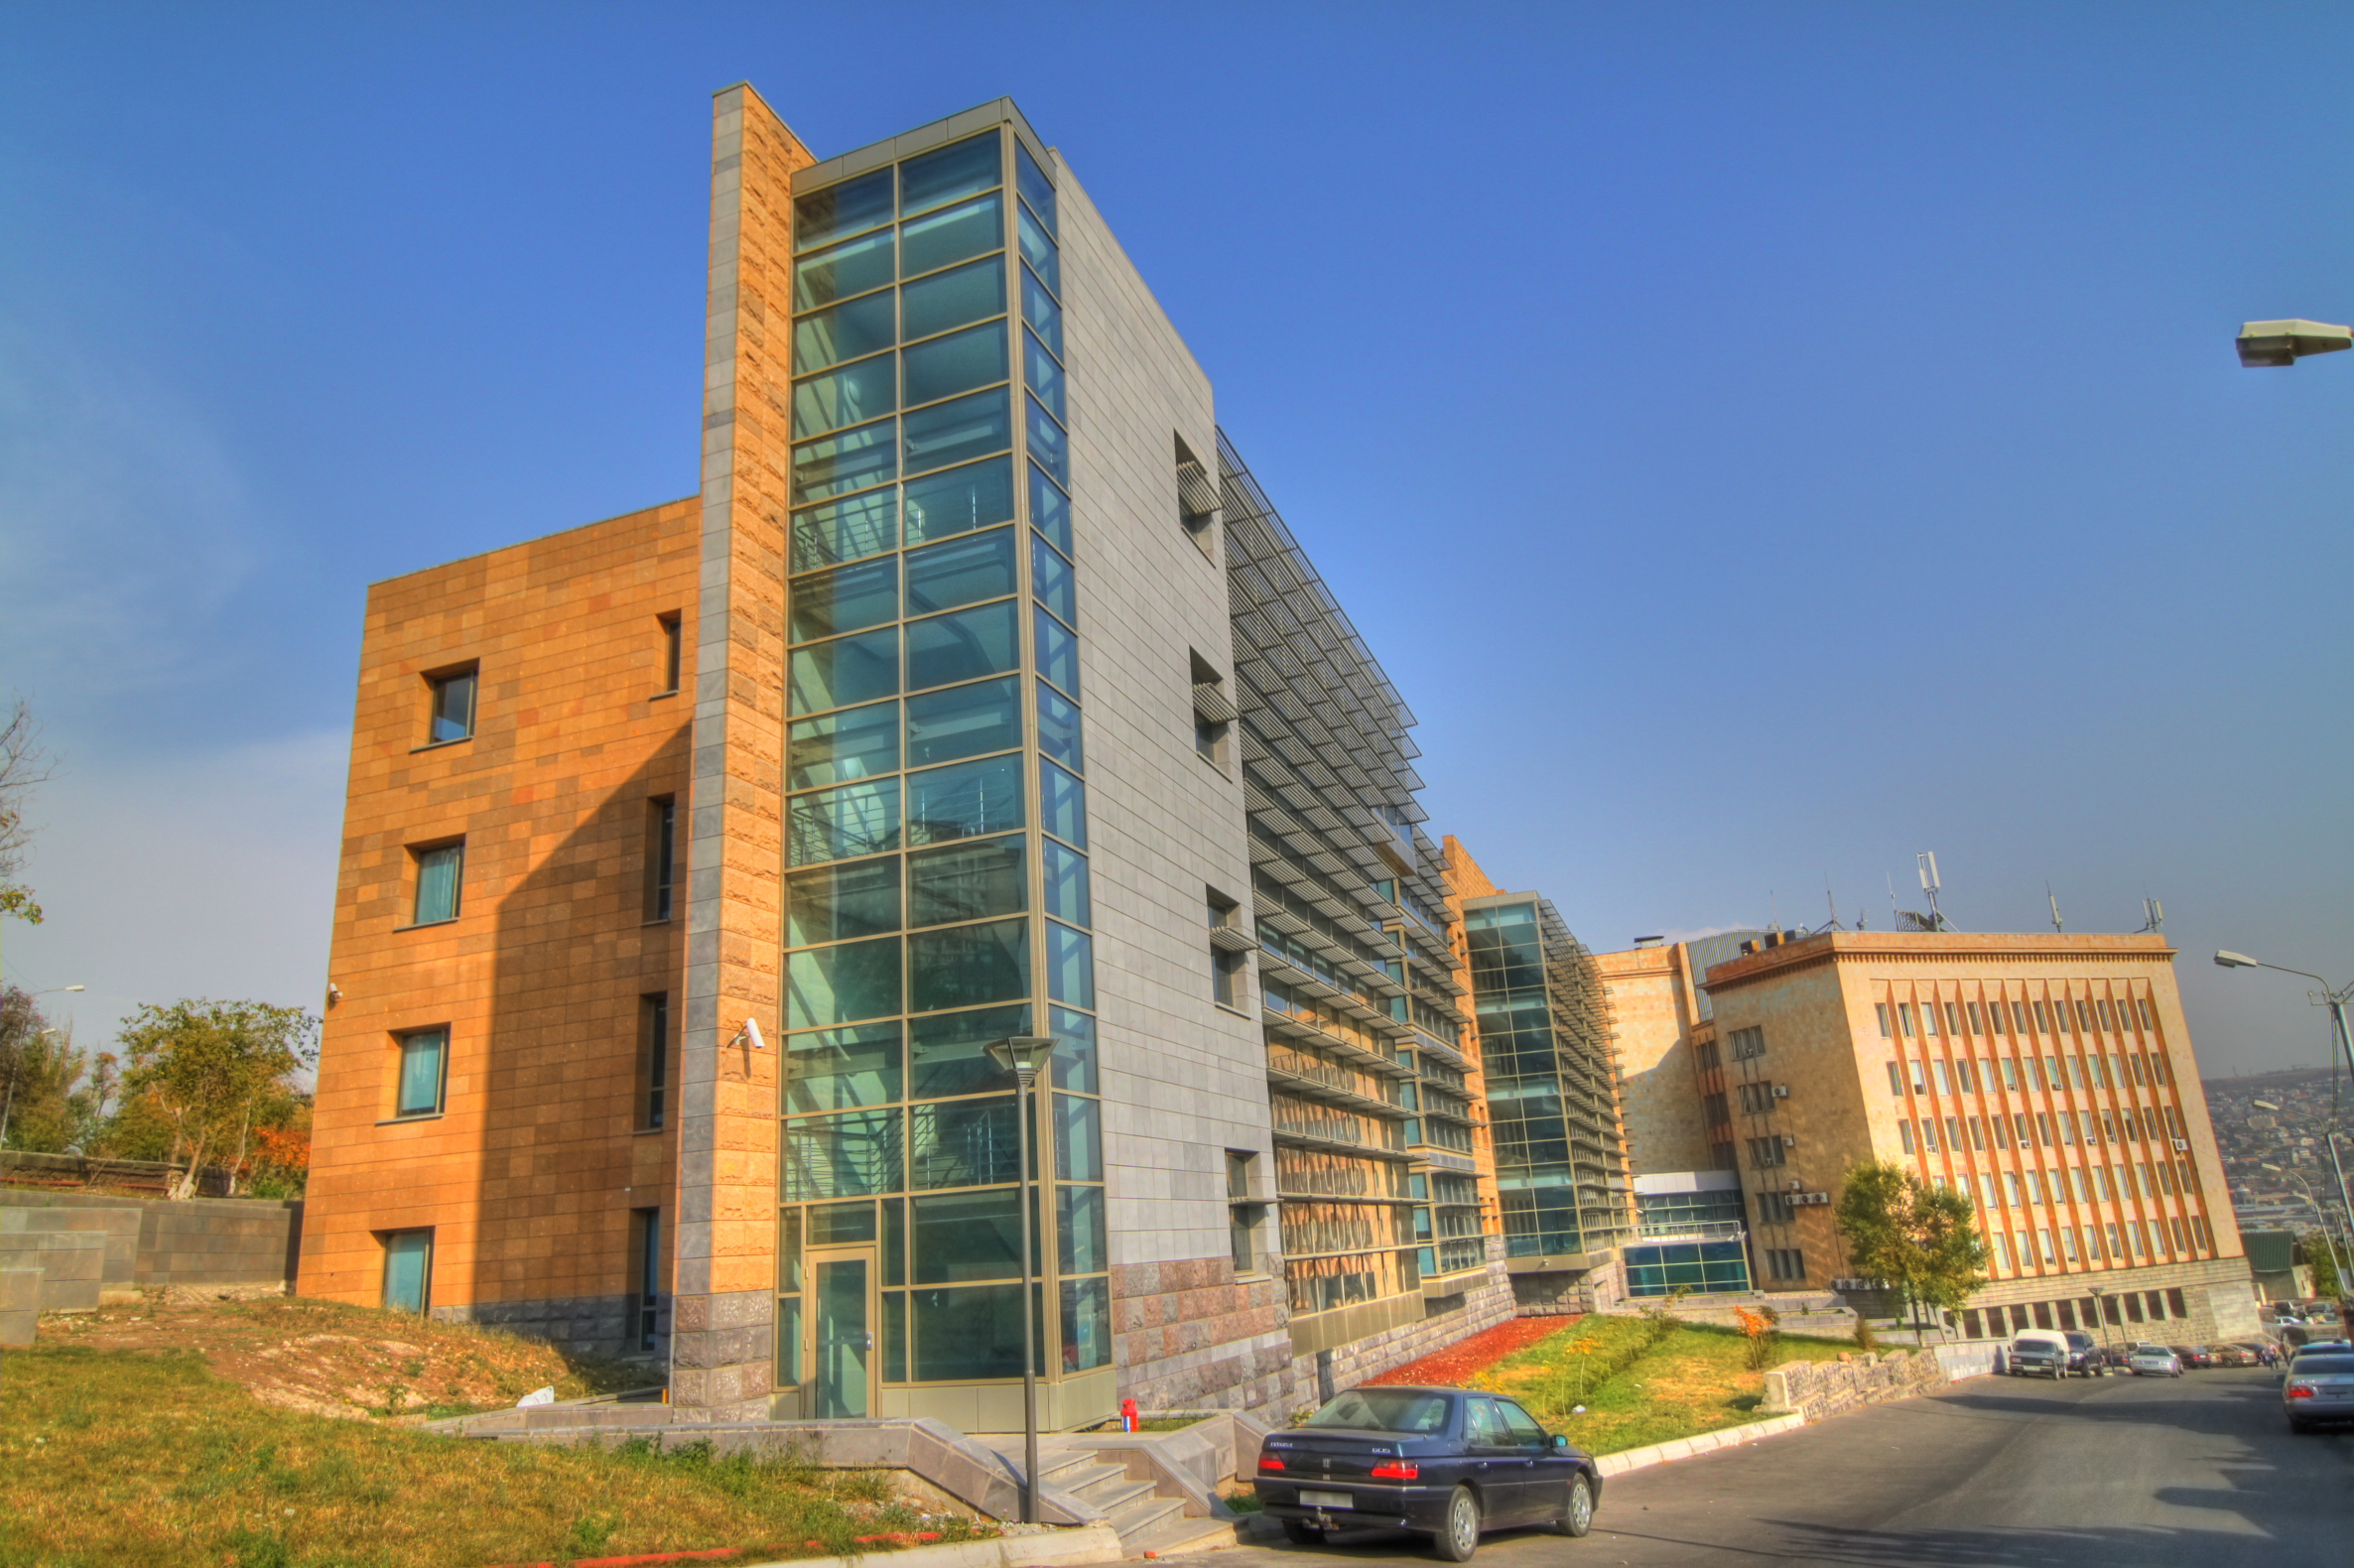 http://upload.wikimedia.org/wikipedia/commons/5/50/American_University_of_Armenia_-_HDR.JPG